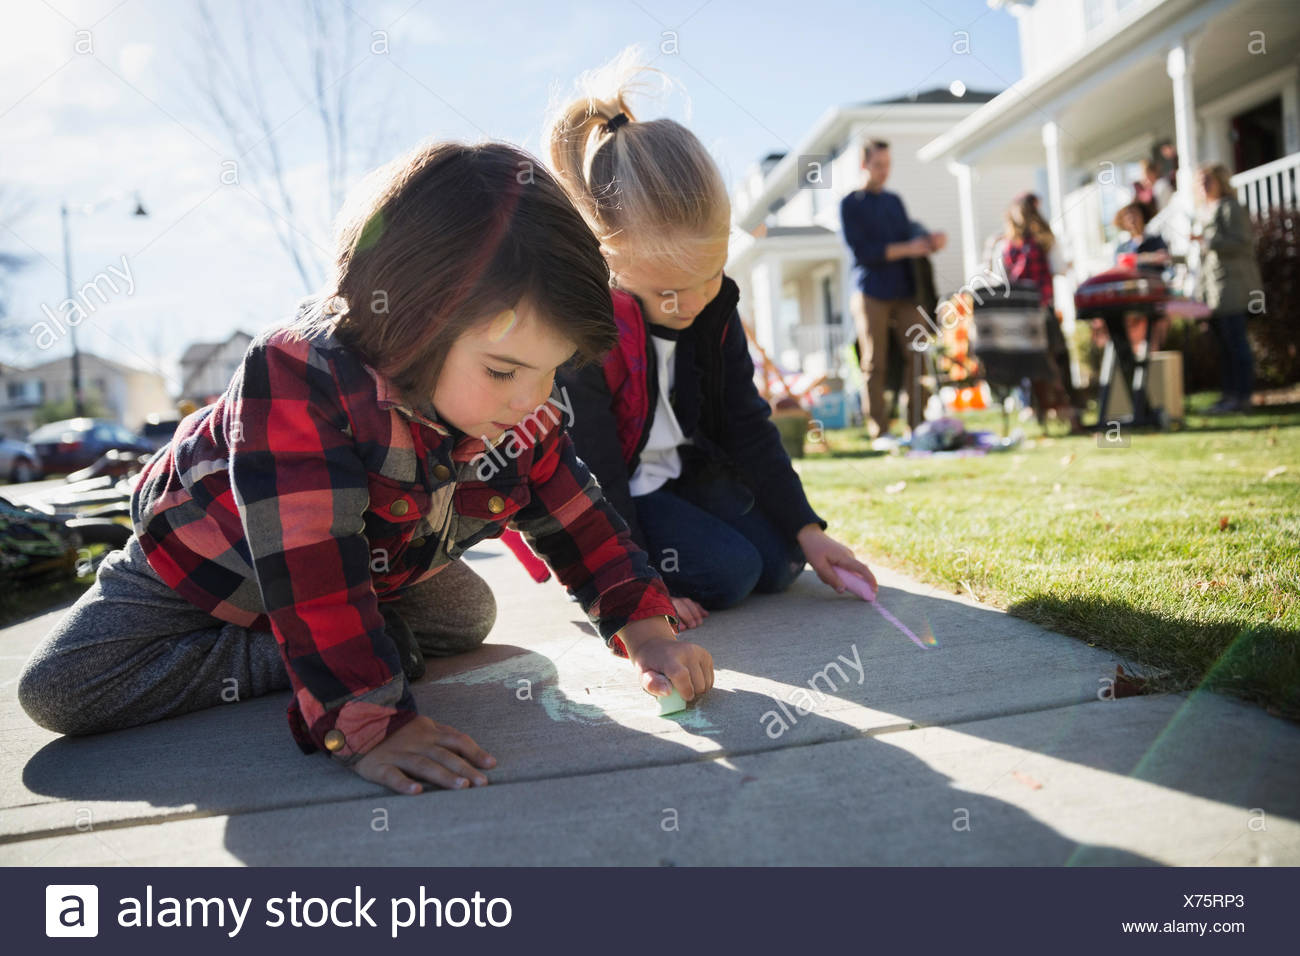 Kids drawing on sidewalk with chalk - Stock Image